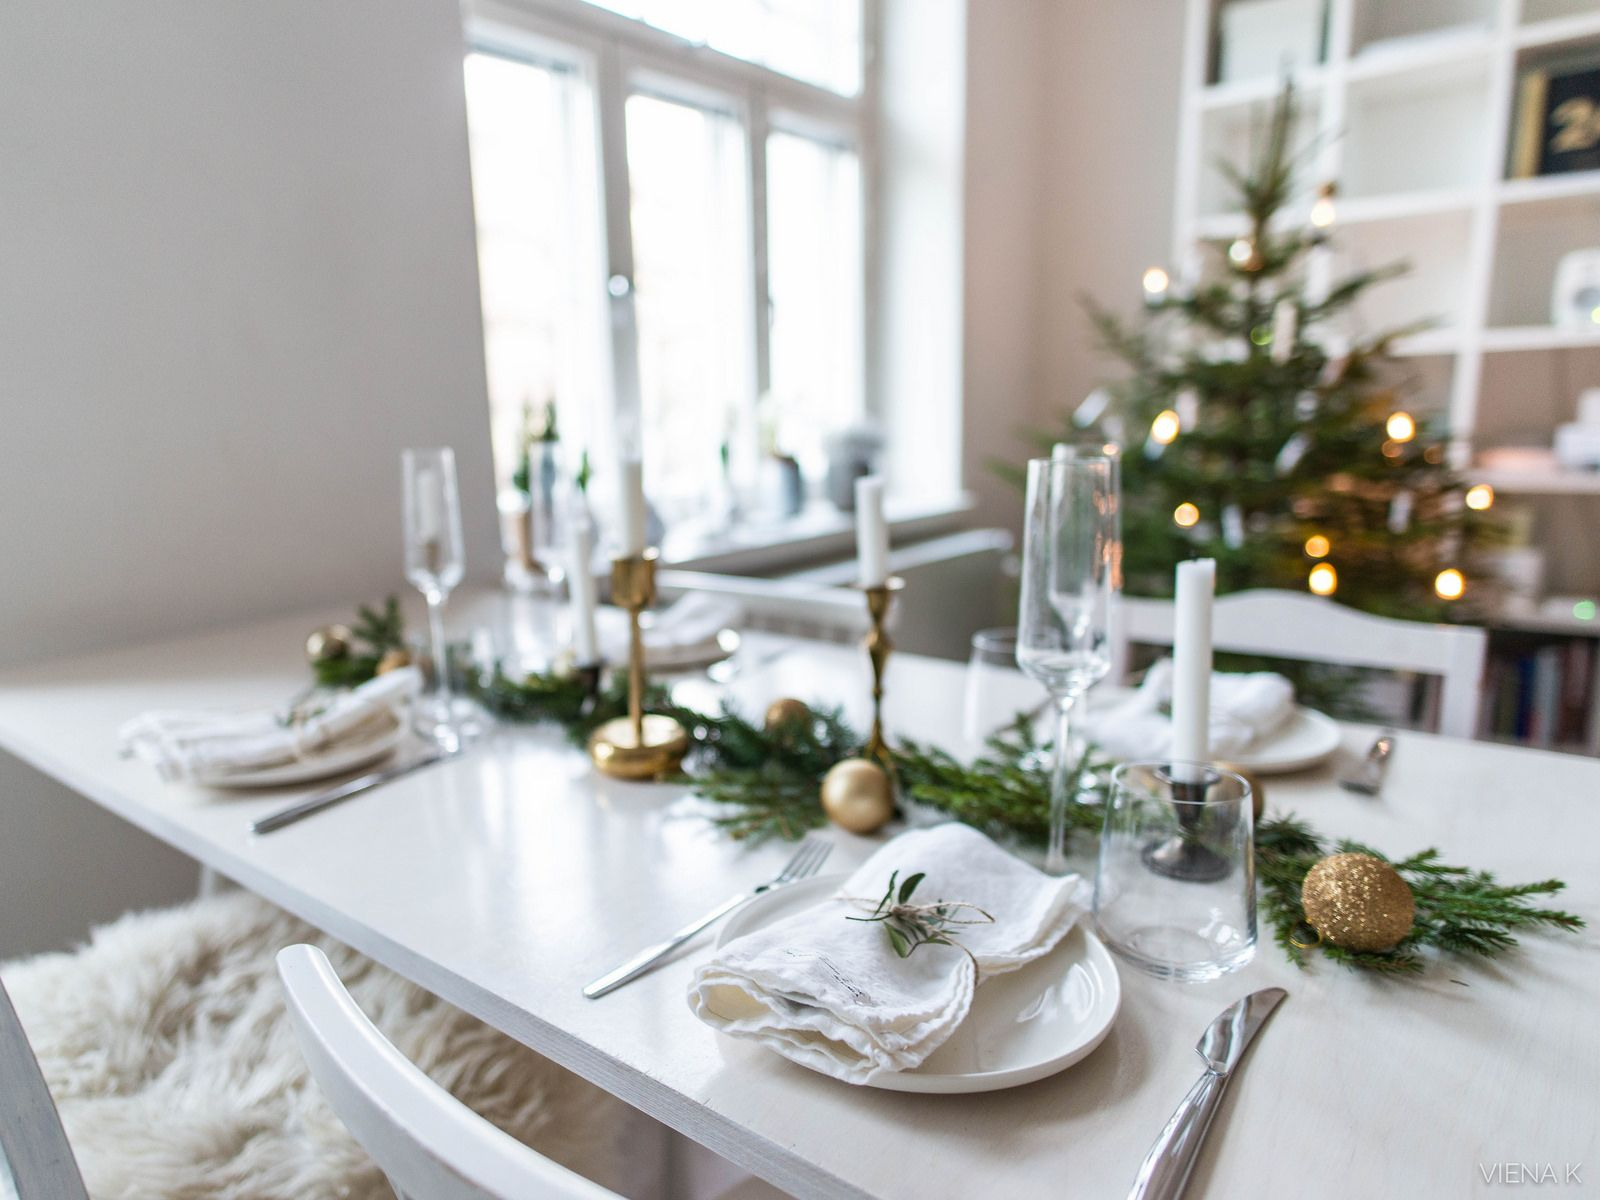 Christmas table setting www.vienak.com